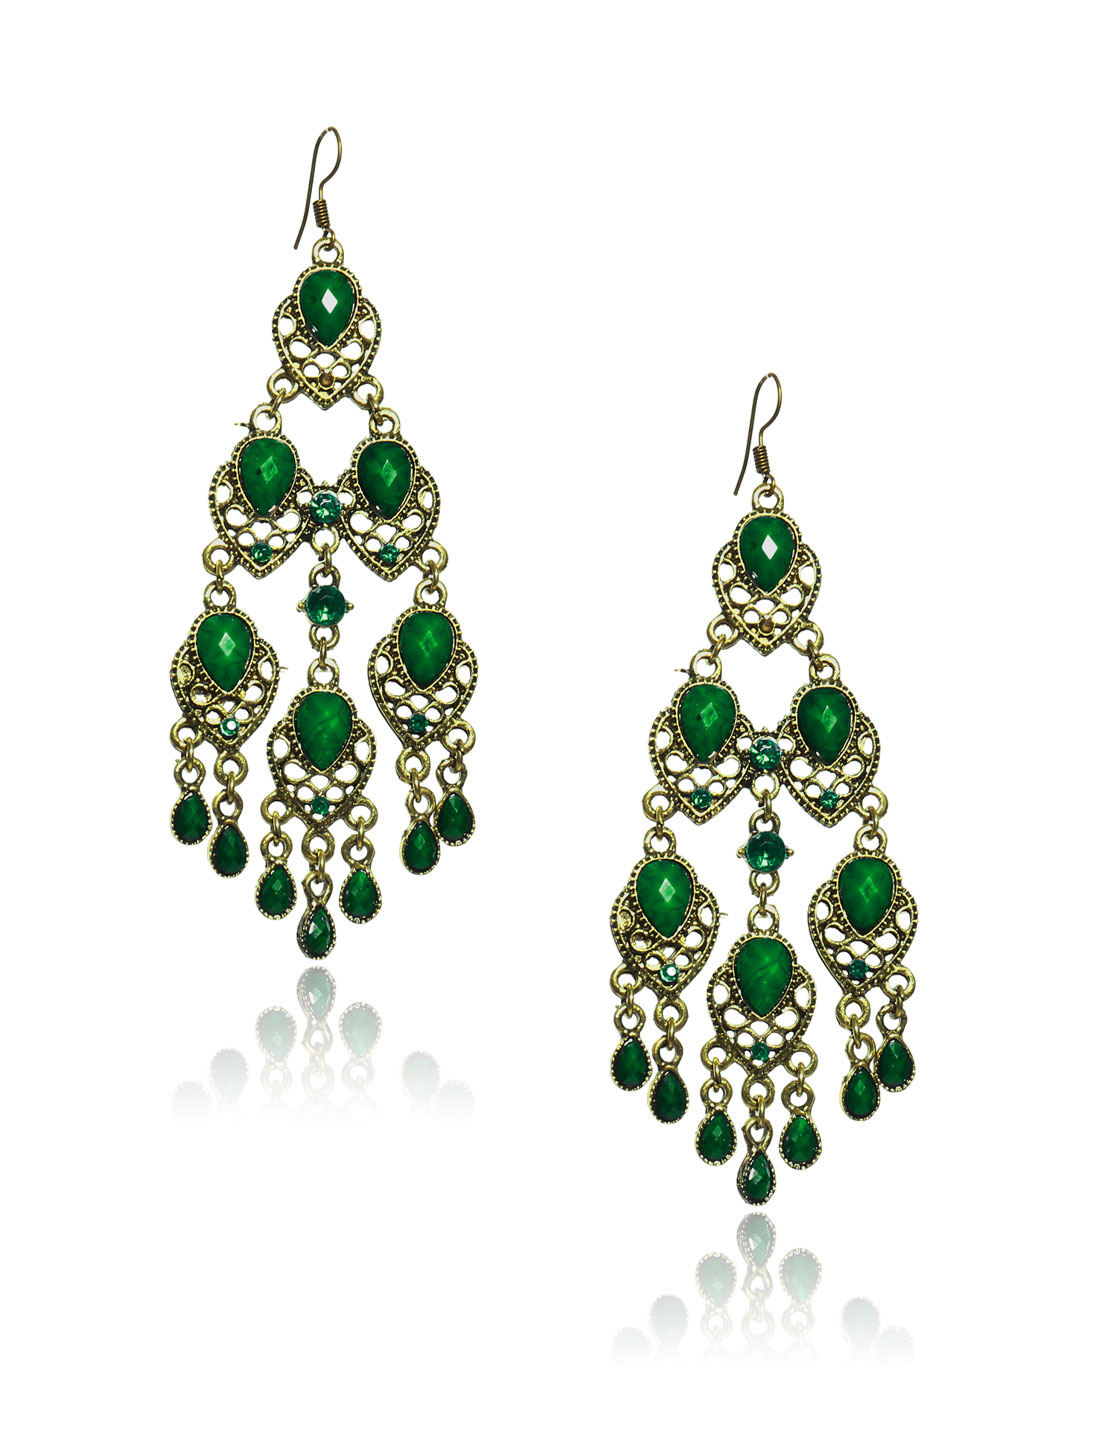 Women Retro Green three-layer Shaped Crystal Resin Drop Dangle Hook Earring Ear Stud